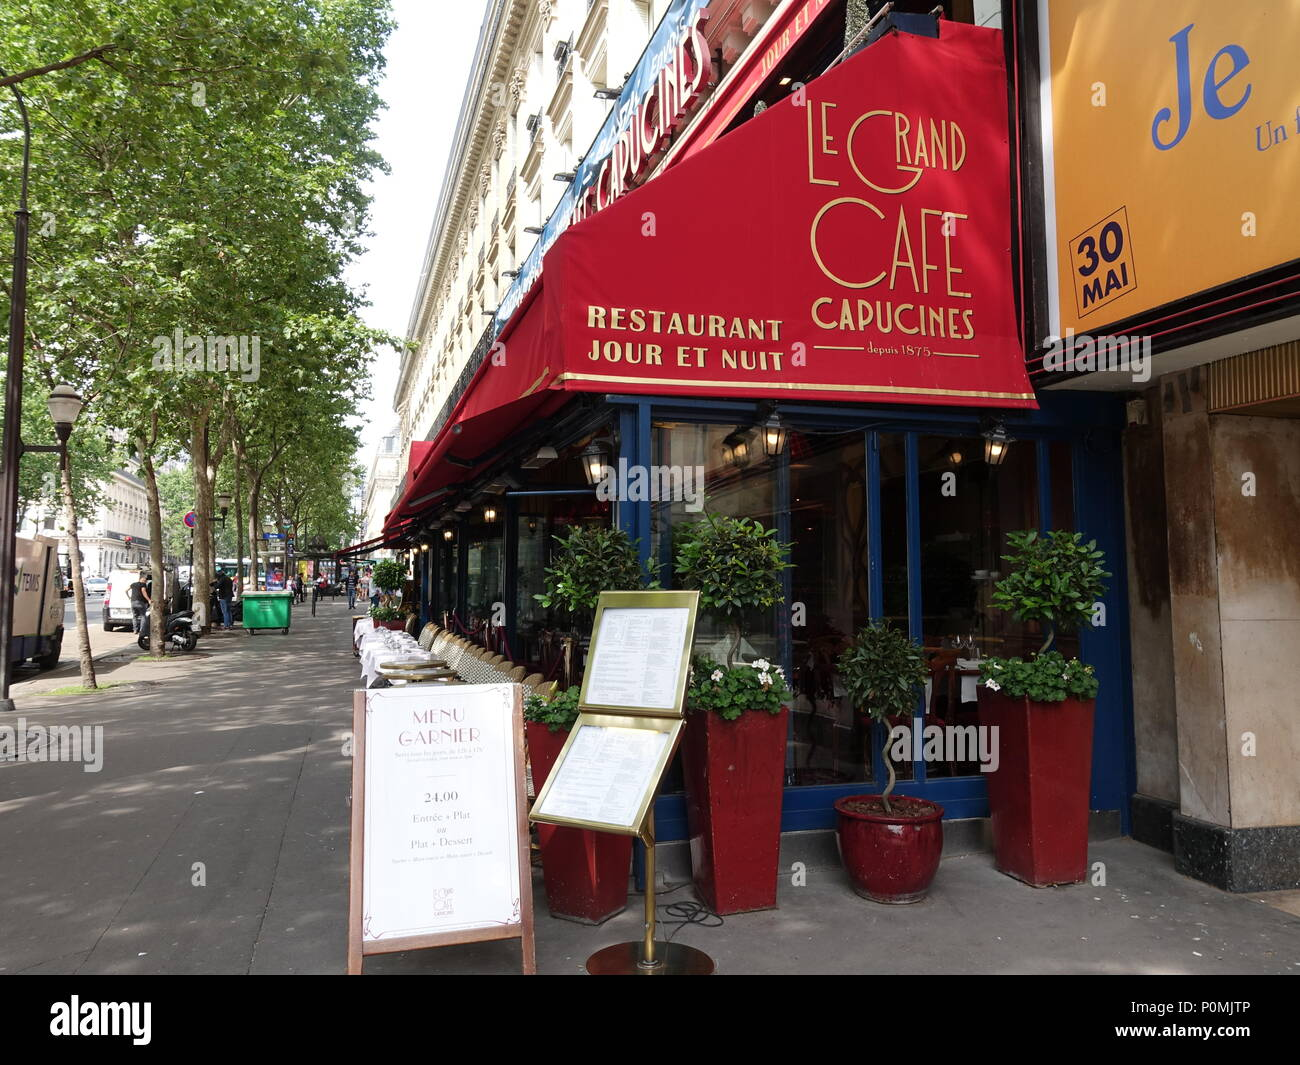 Cafe ready for service, before the lunchtime hour, terrace of Le Grand Cafe Capucines, Paris, France - Stock Image